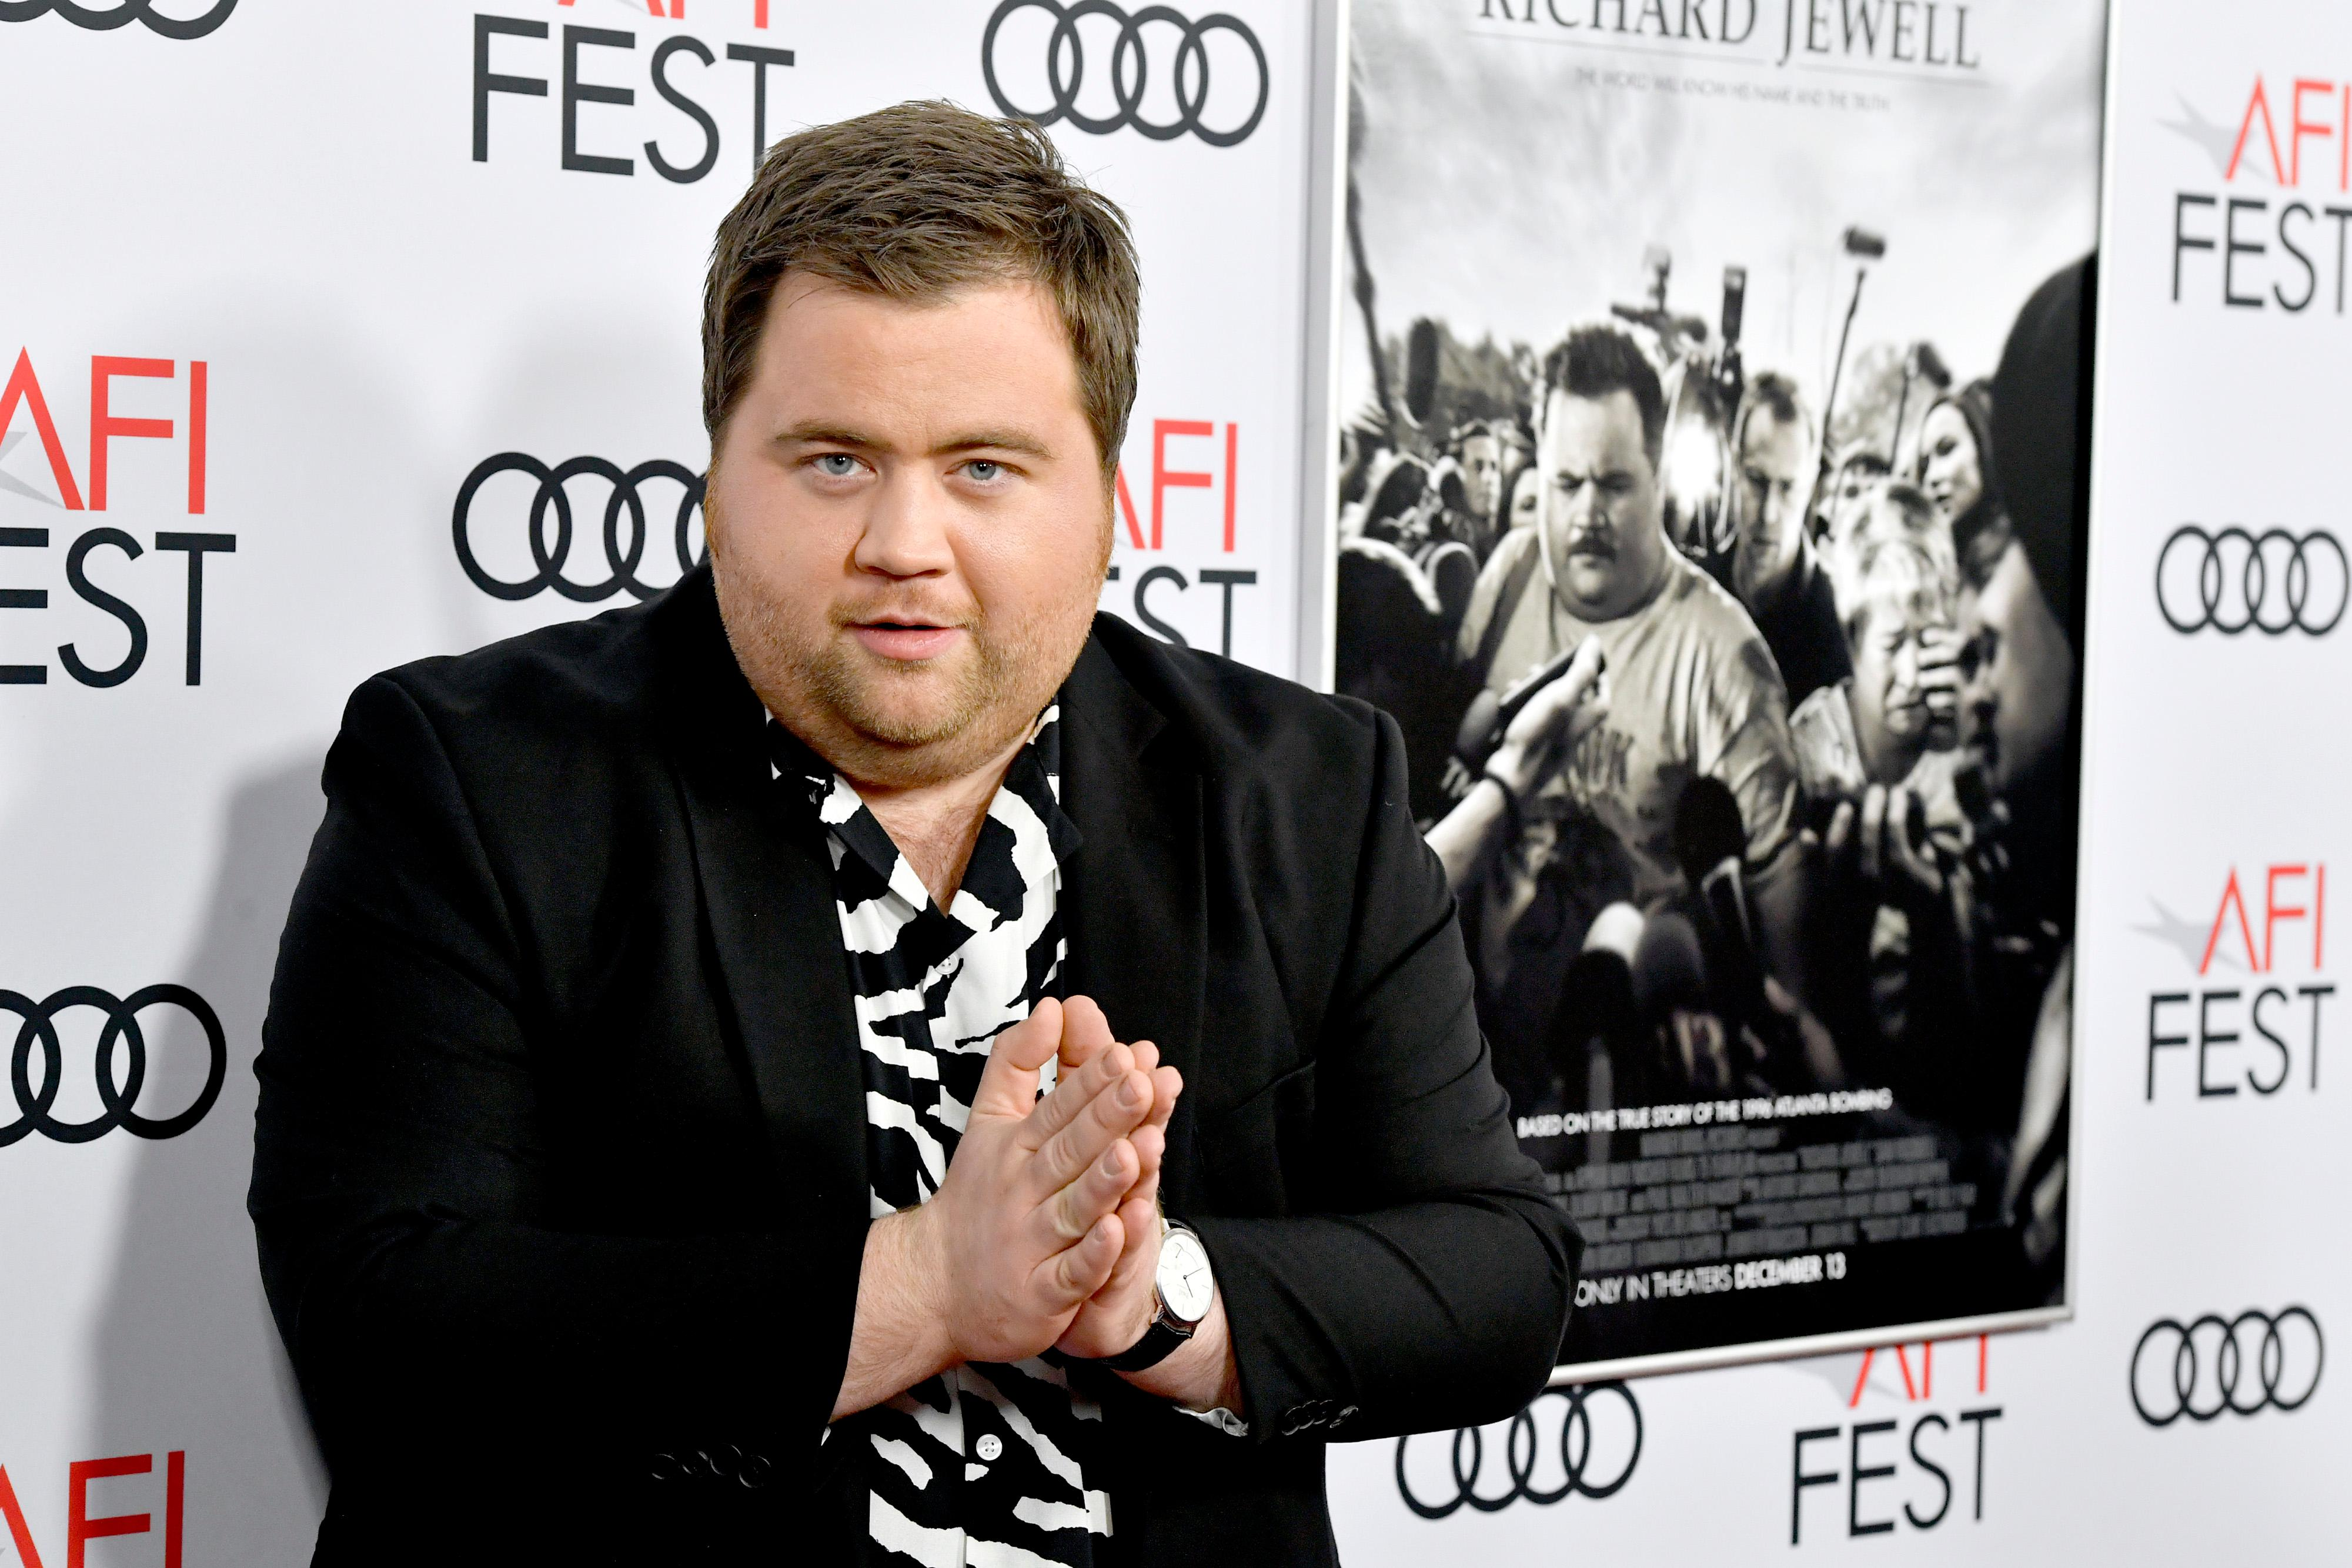 richard jewell movie controvery actor